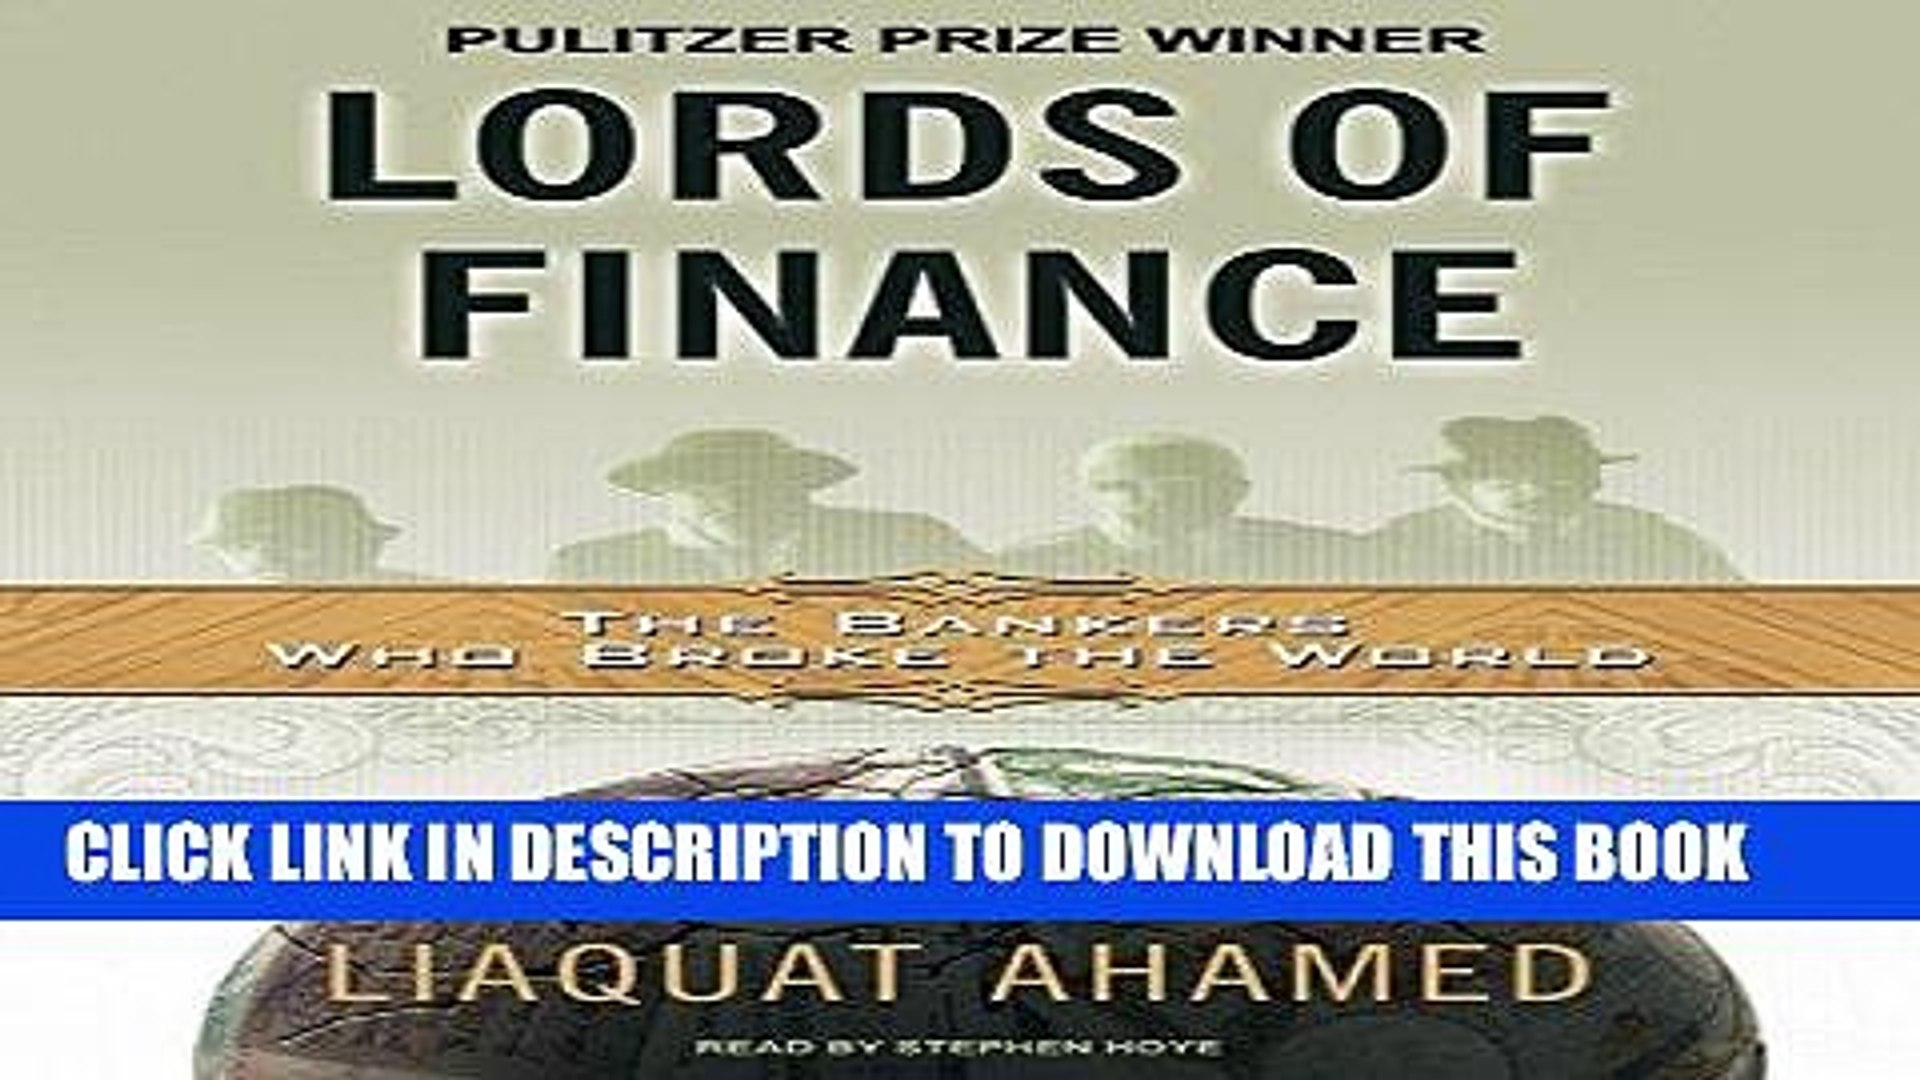 [FREE] EBOOK Lords of Finance: The Bankers Who Broke the World [MP3 AUDIO] [UNABRIDGED] (MP3 CD)